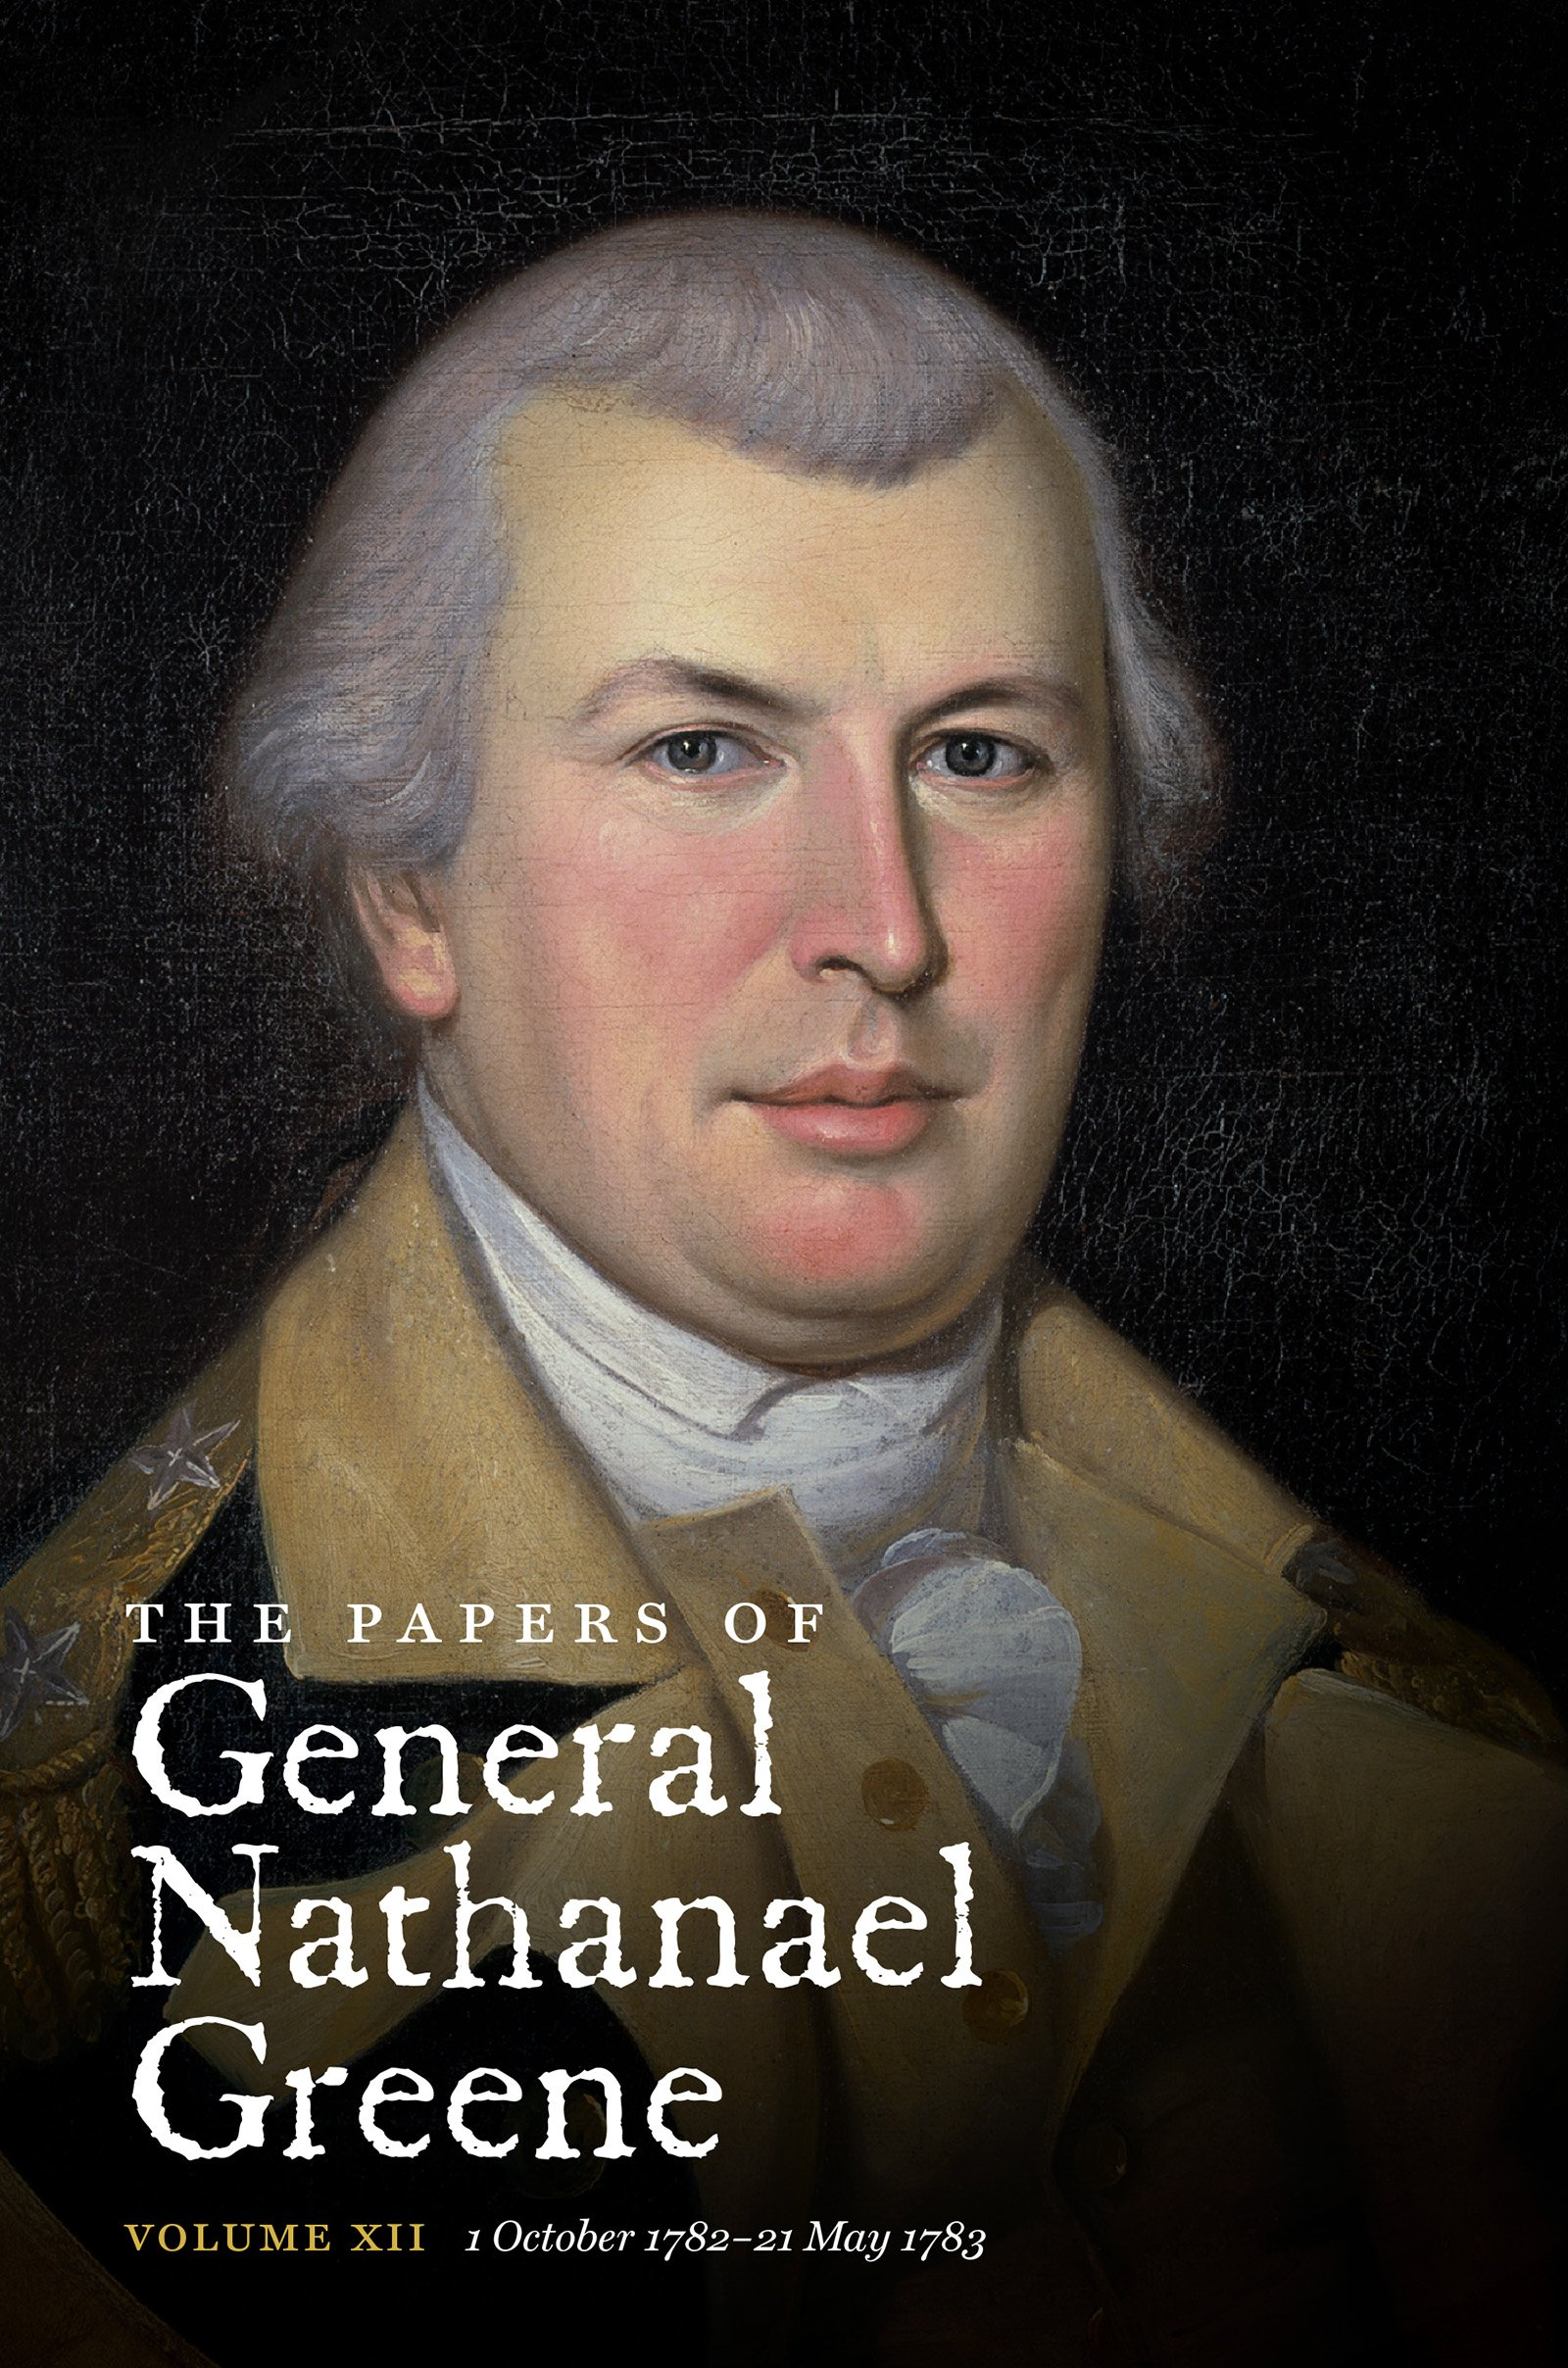 Download The Papers of General Nathanael Greene: Vol. XII: 1 October 1782 - 21 May 1783 (Published for the Rhode Island Historical Society) PDF